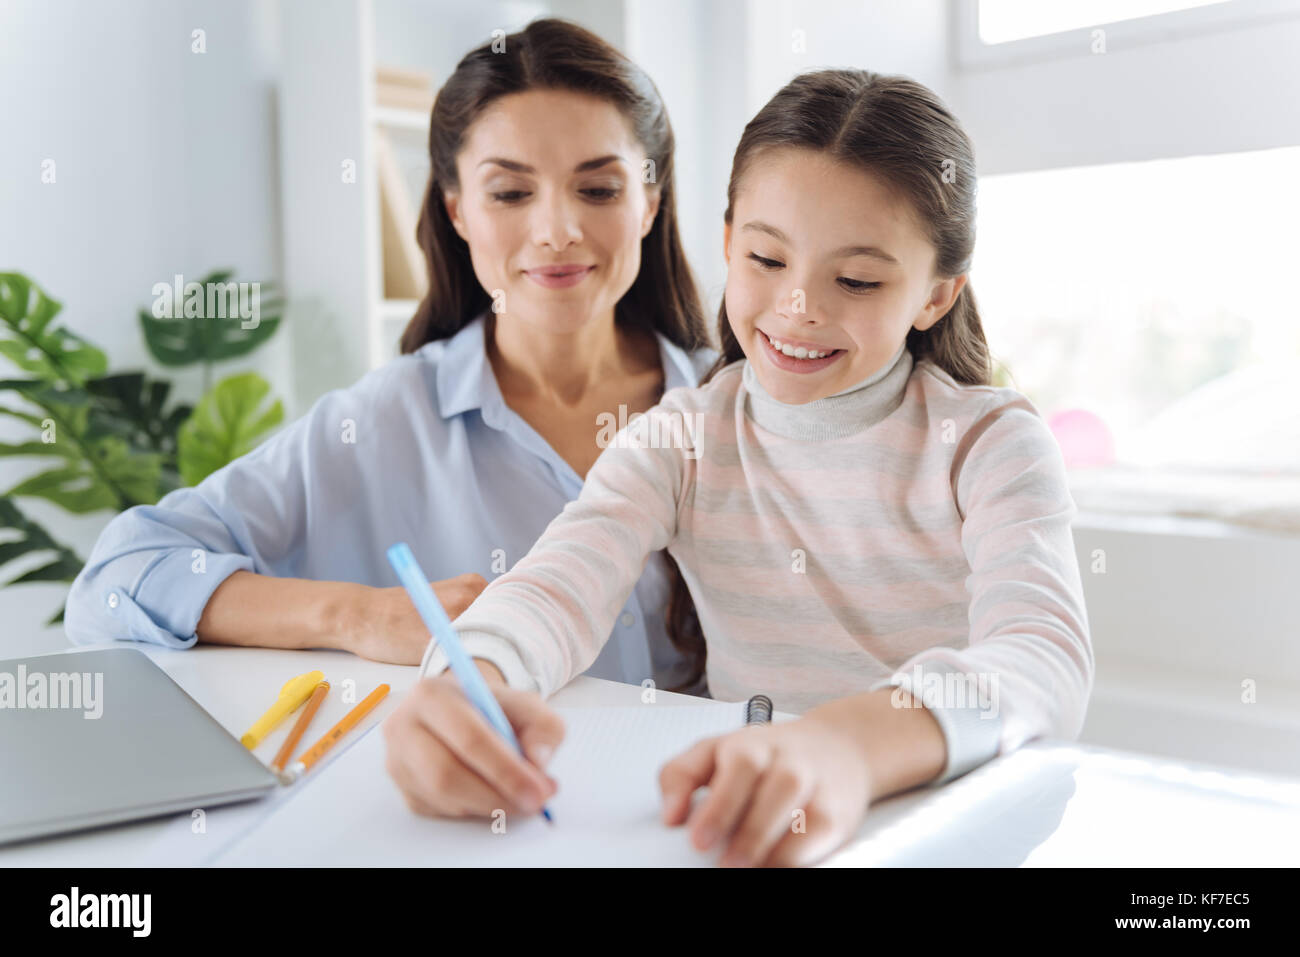 Cute intelligent girl taking notes - Stock Image